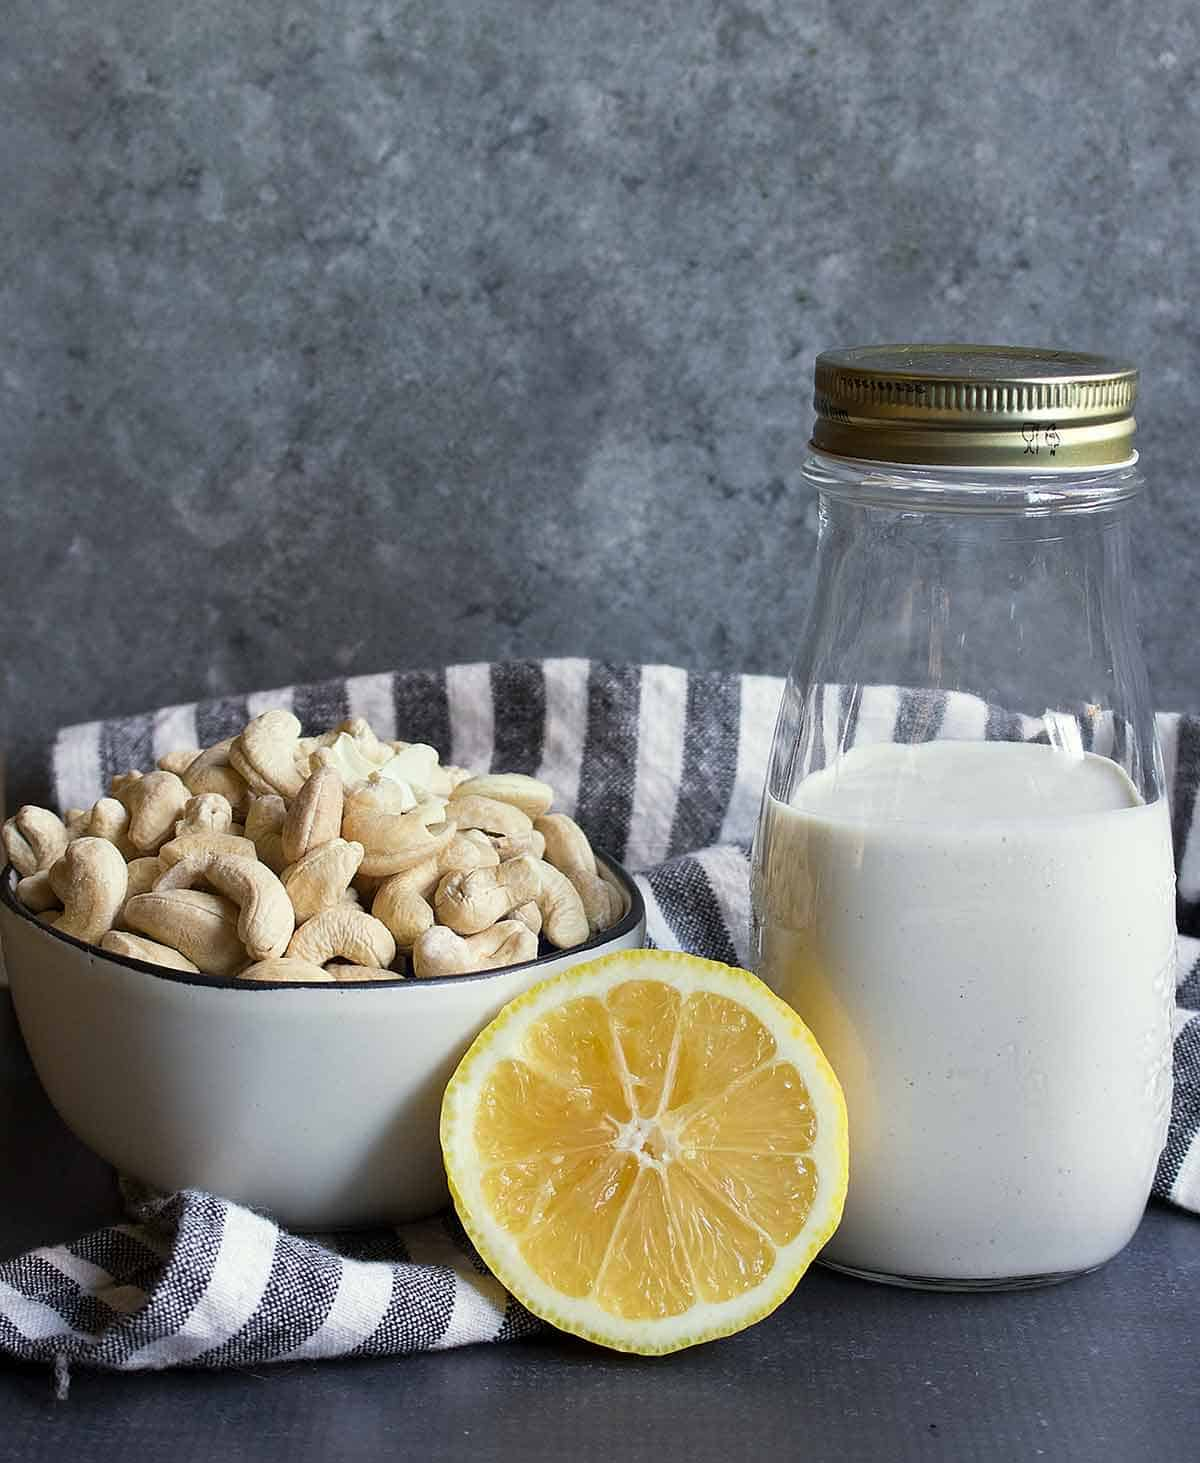 Vegan Buttermilk and its ingredients, cashews and lemon